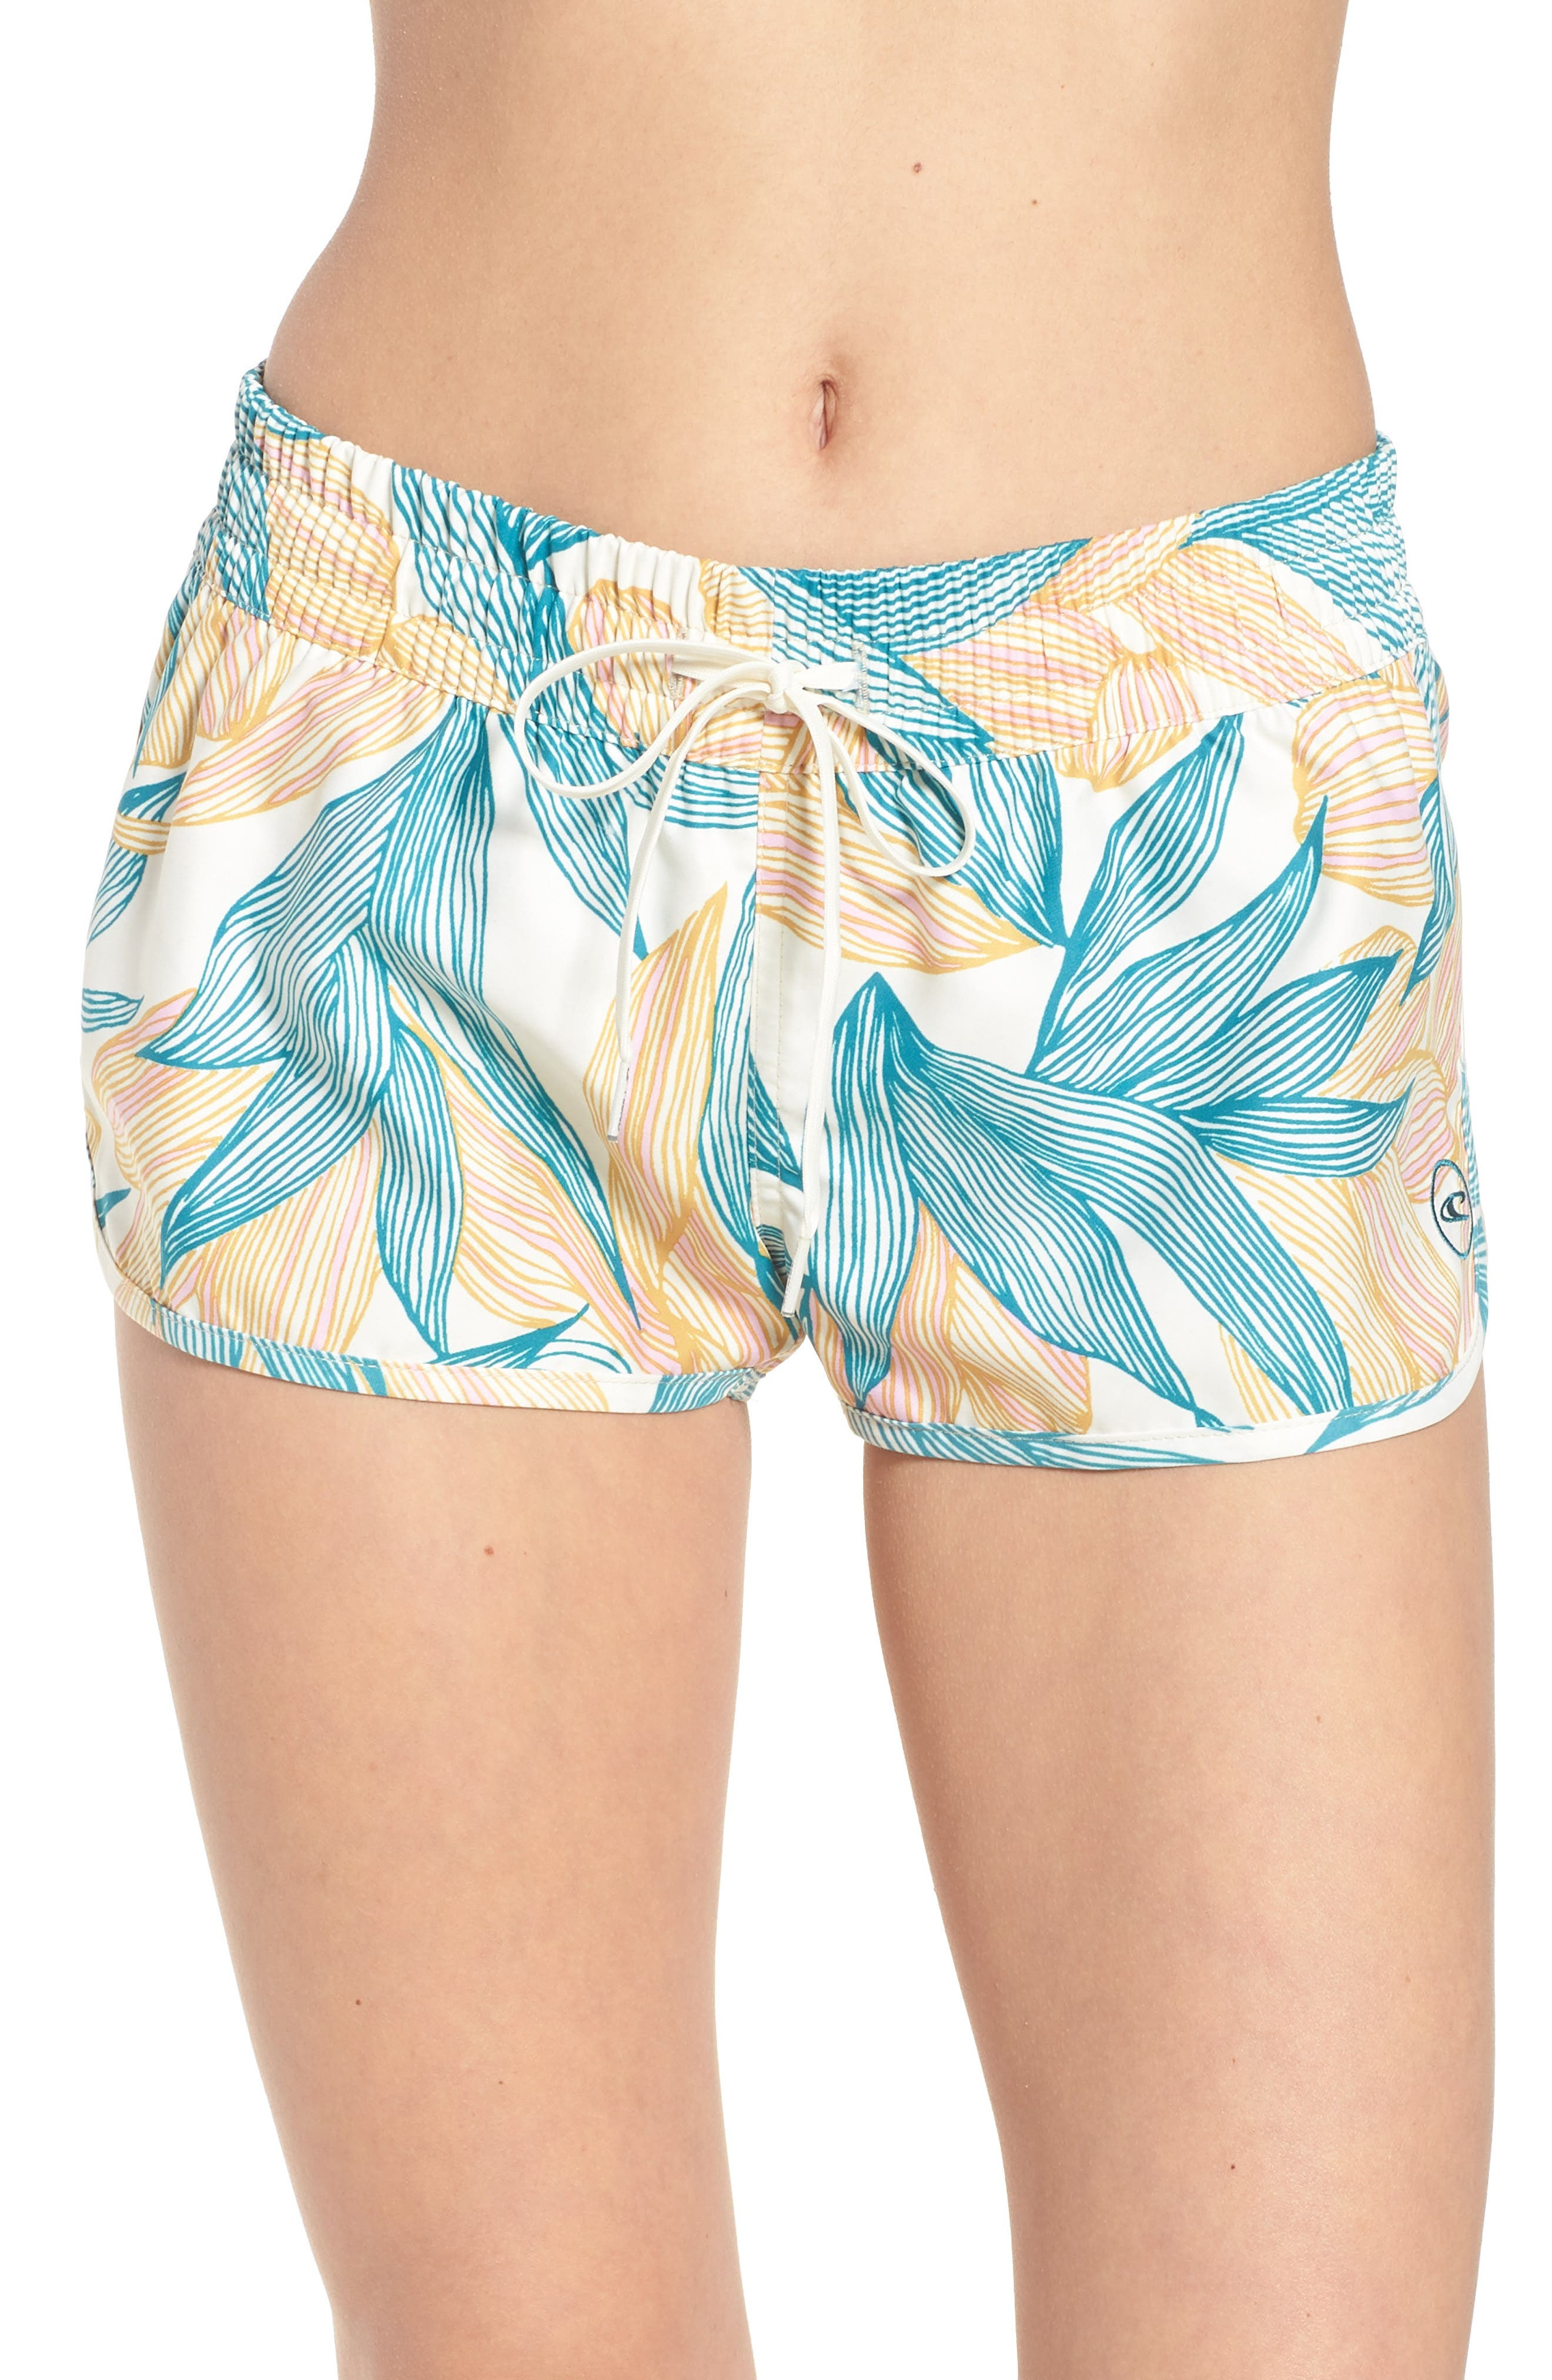 Bayside 2 Dynasuede Board Shorts,                         Main,                         color, Island Turquoise